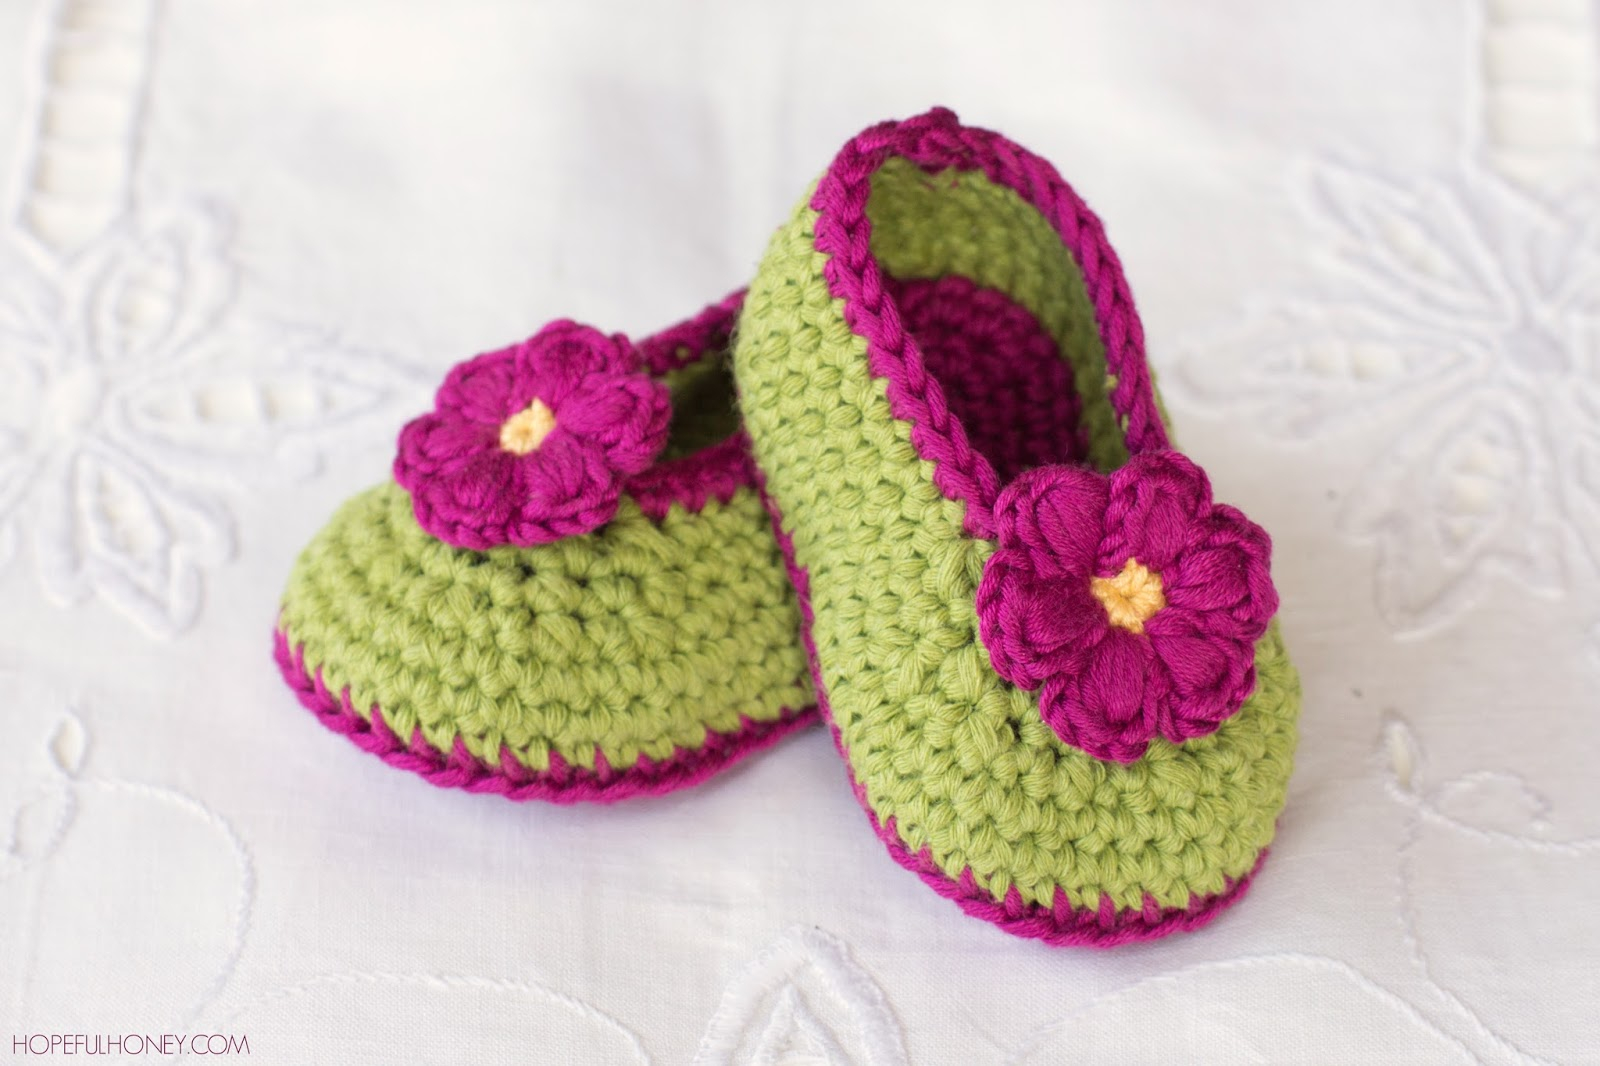 Knit Booties Pattern Free Easy To Make Crochet Booties Crochet And Knitting Patterns 2019